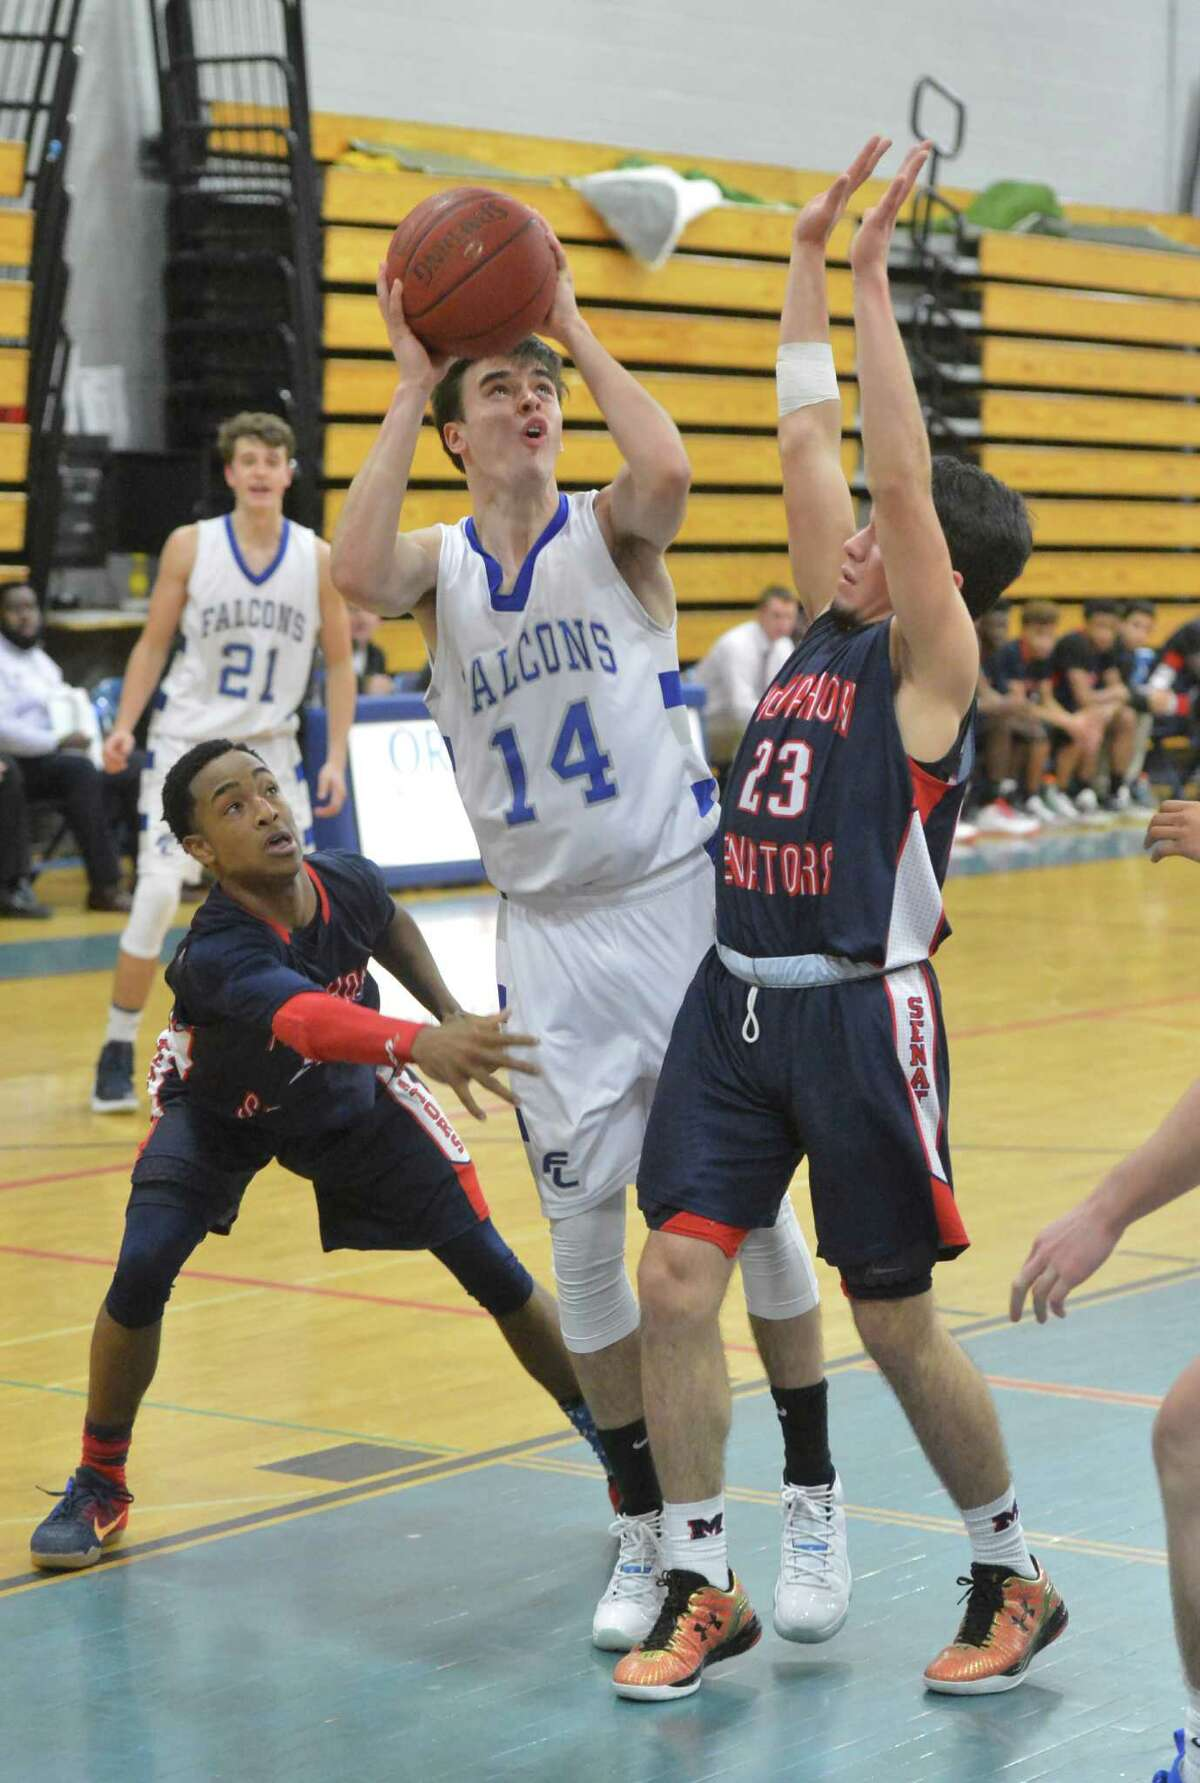 Fairfield Ludlowe's # 14 Ryan Keeley trys to get a shot vs Brien Mcmahon during boys basketball on Tuesday January 3, 2017 at Fairfield Ludlowe in Fairfield Conn.